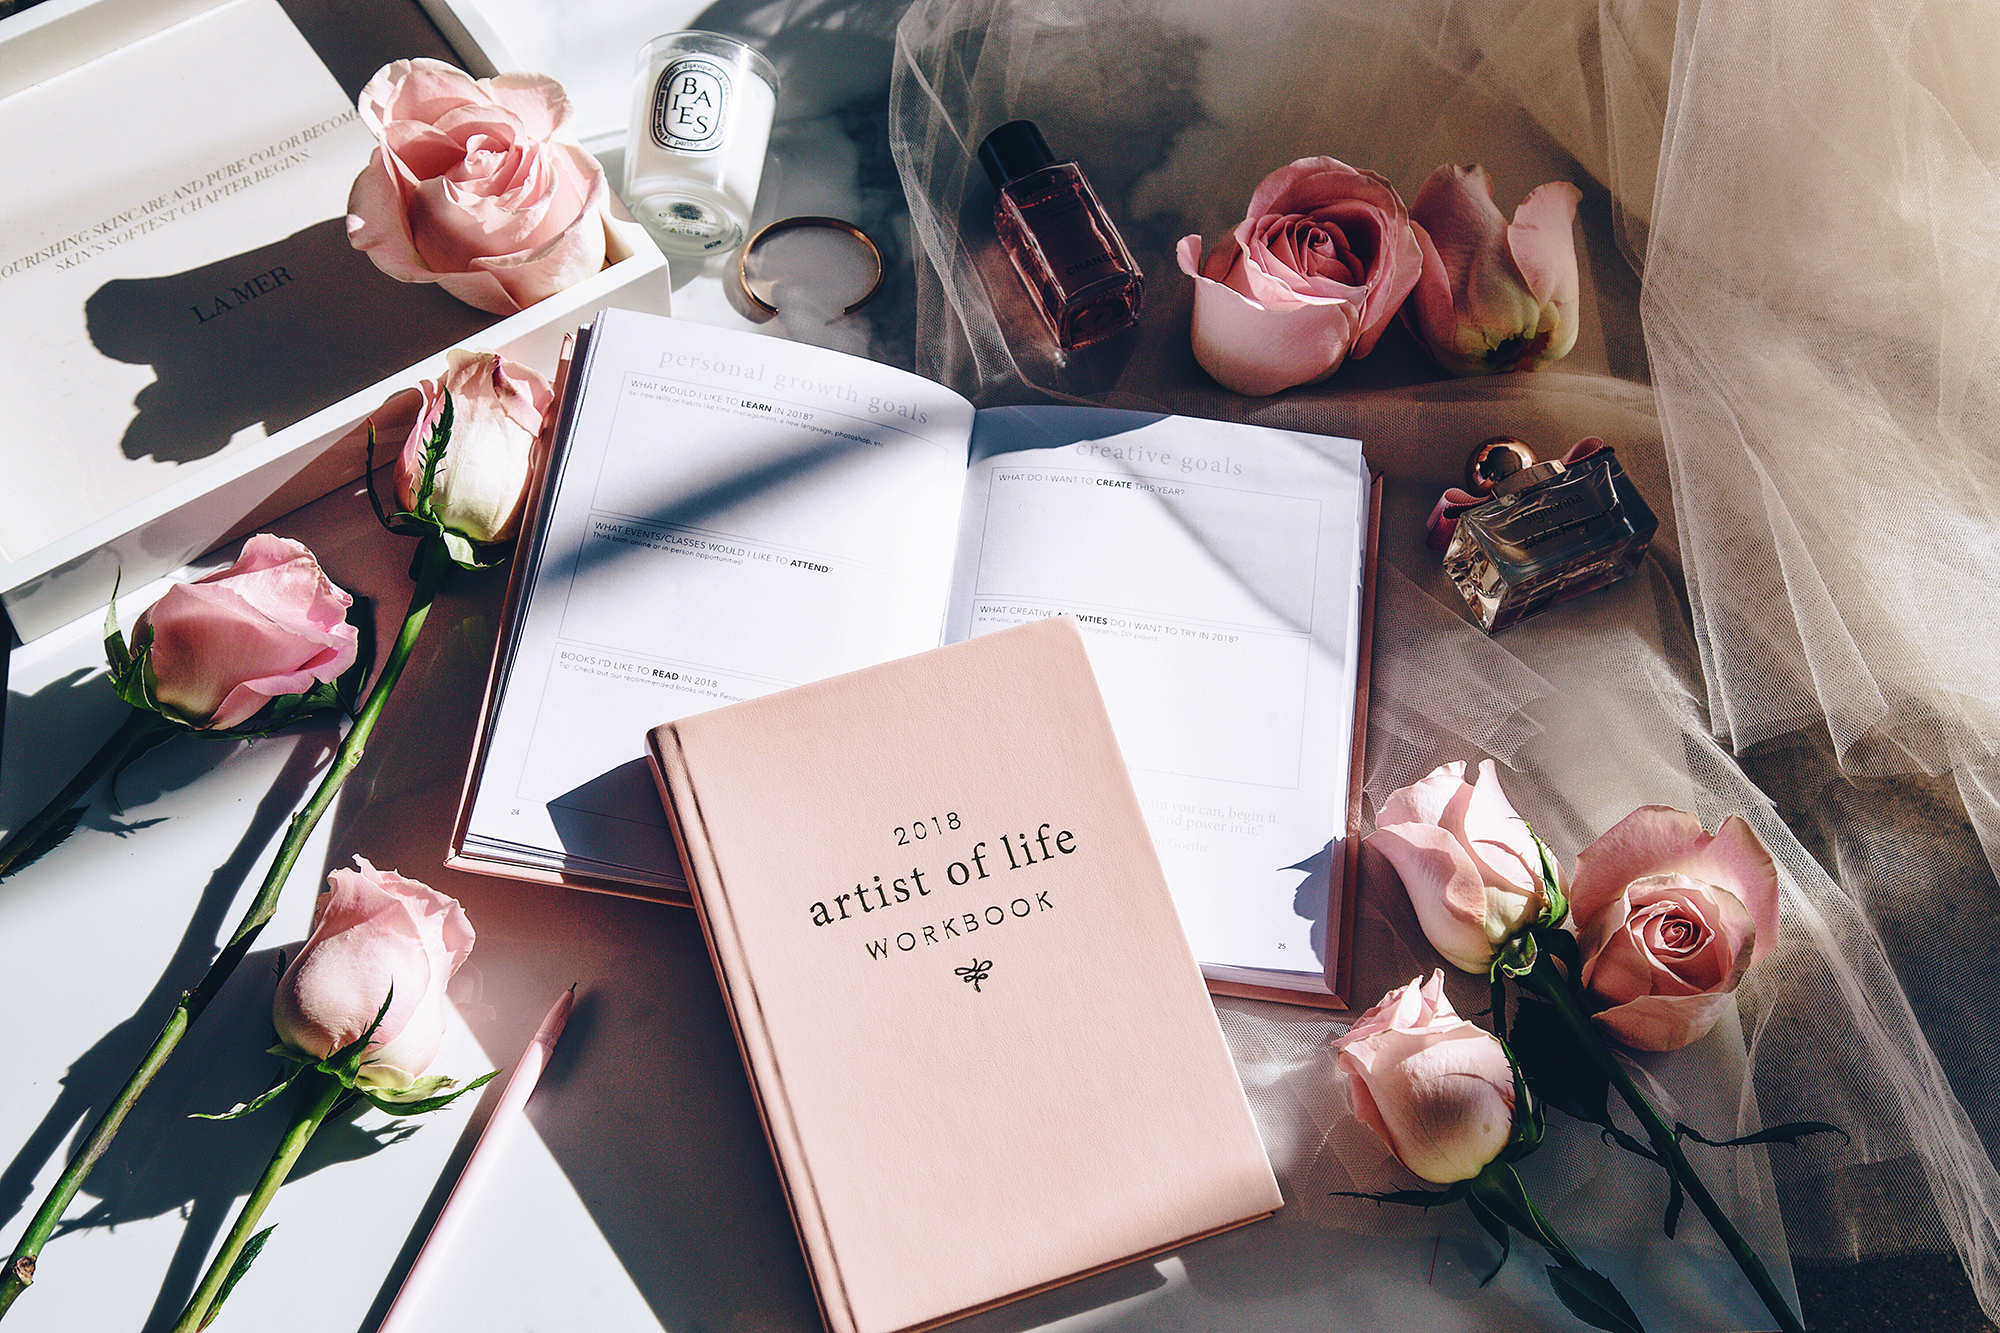 2018 artist of life workbook lavendaire sample photos fandeluxe Image collections